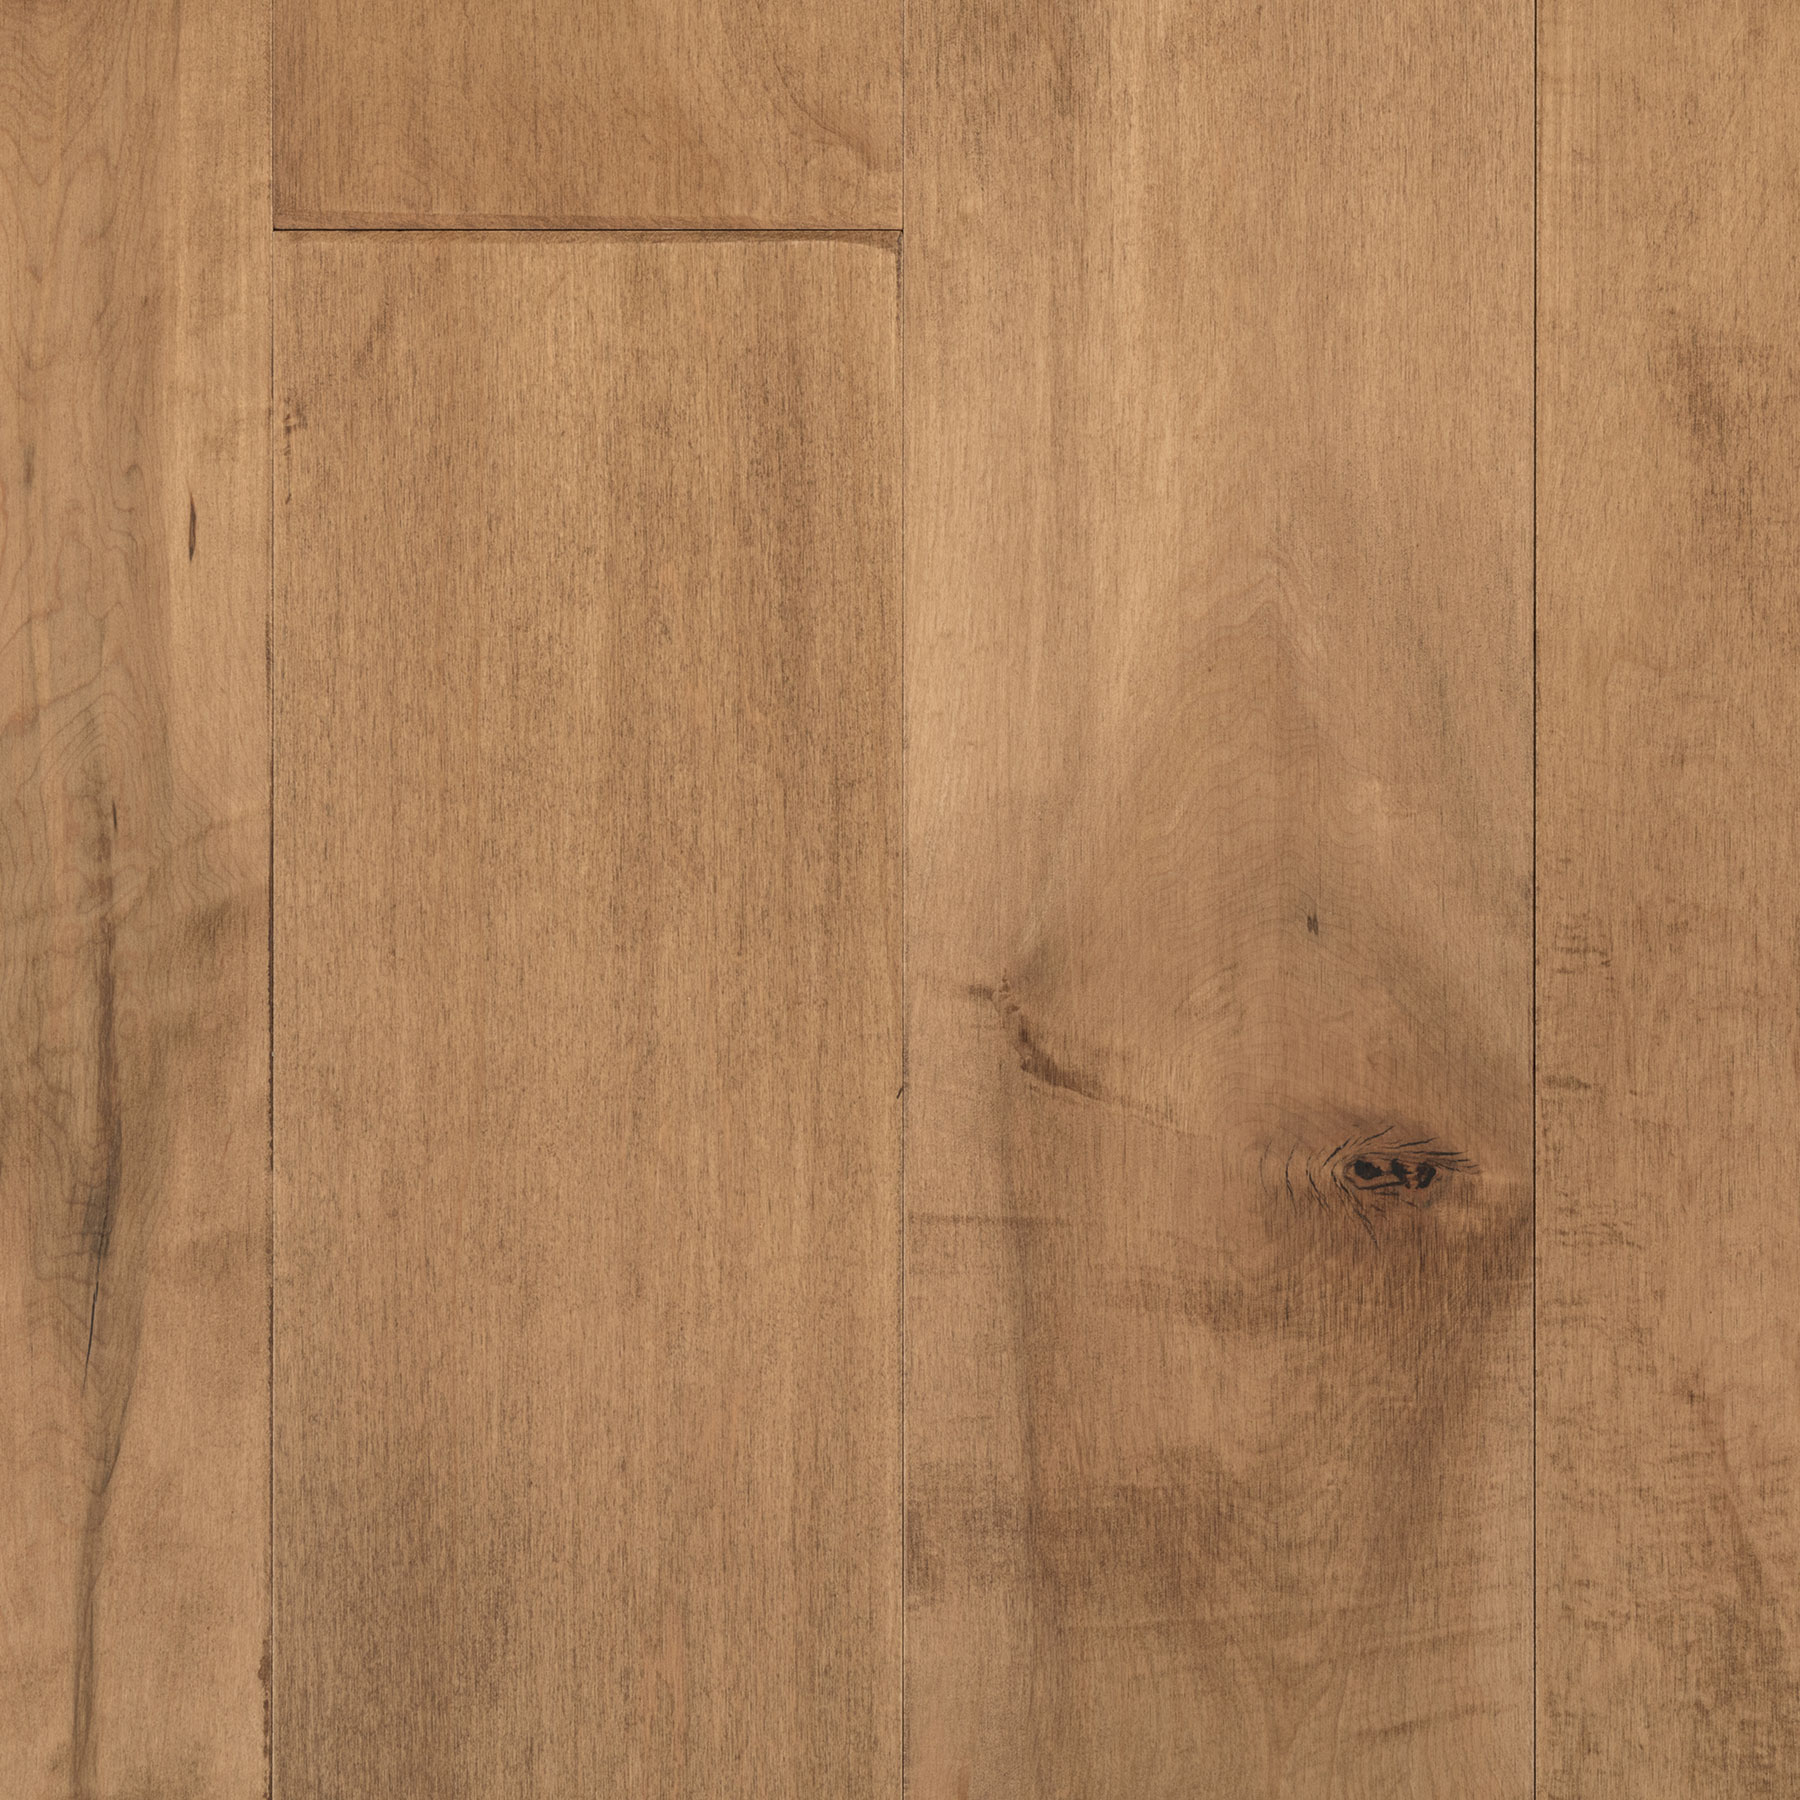 Tesoro Woods - Coastal Lowlands Collection, Chamois - Maple Wood